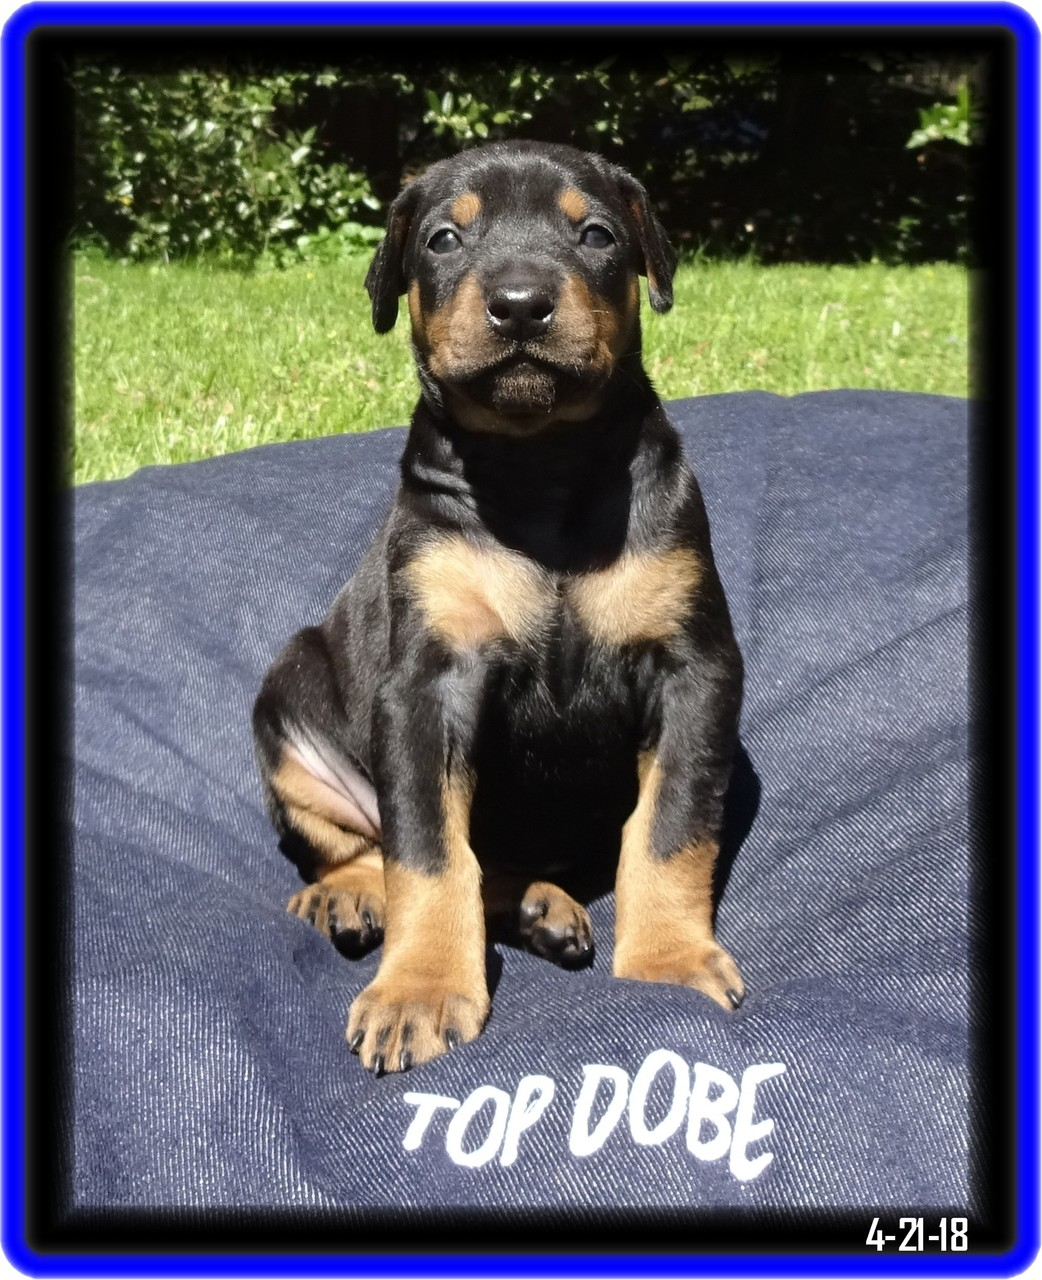 Little Joe - completed SP program - now the youngest King in Beckly WV